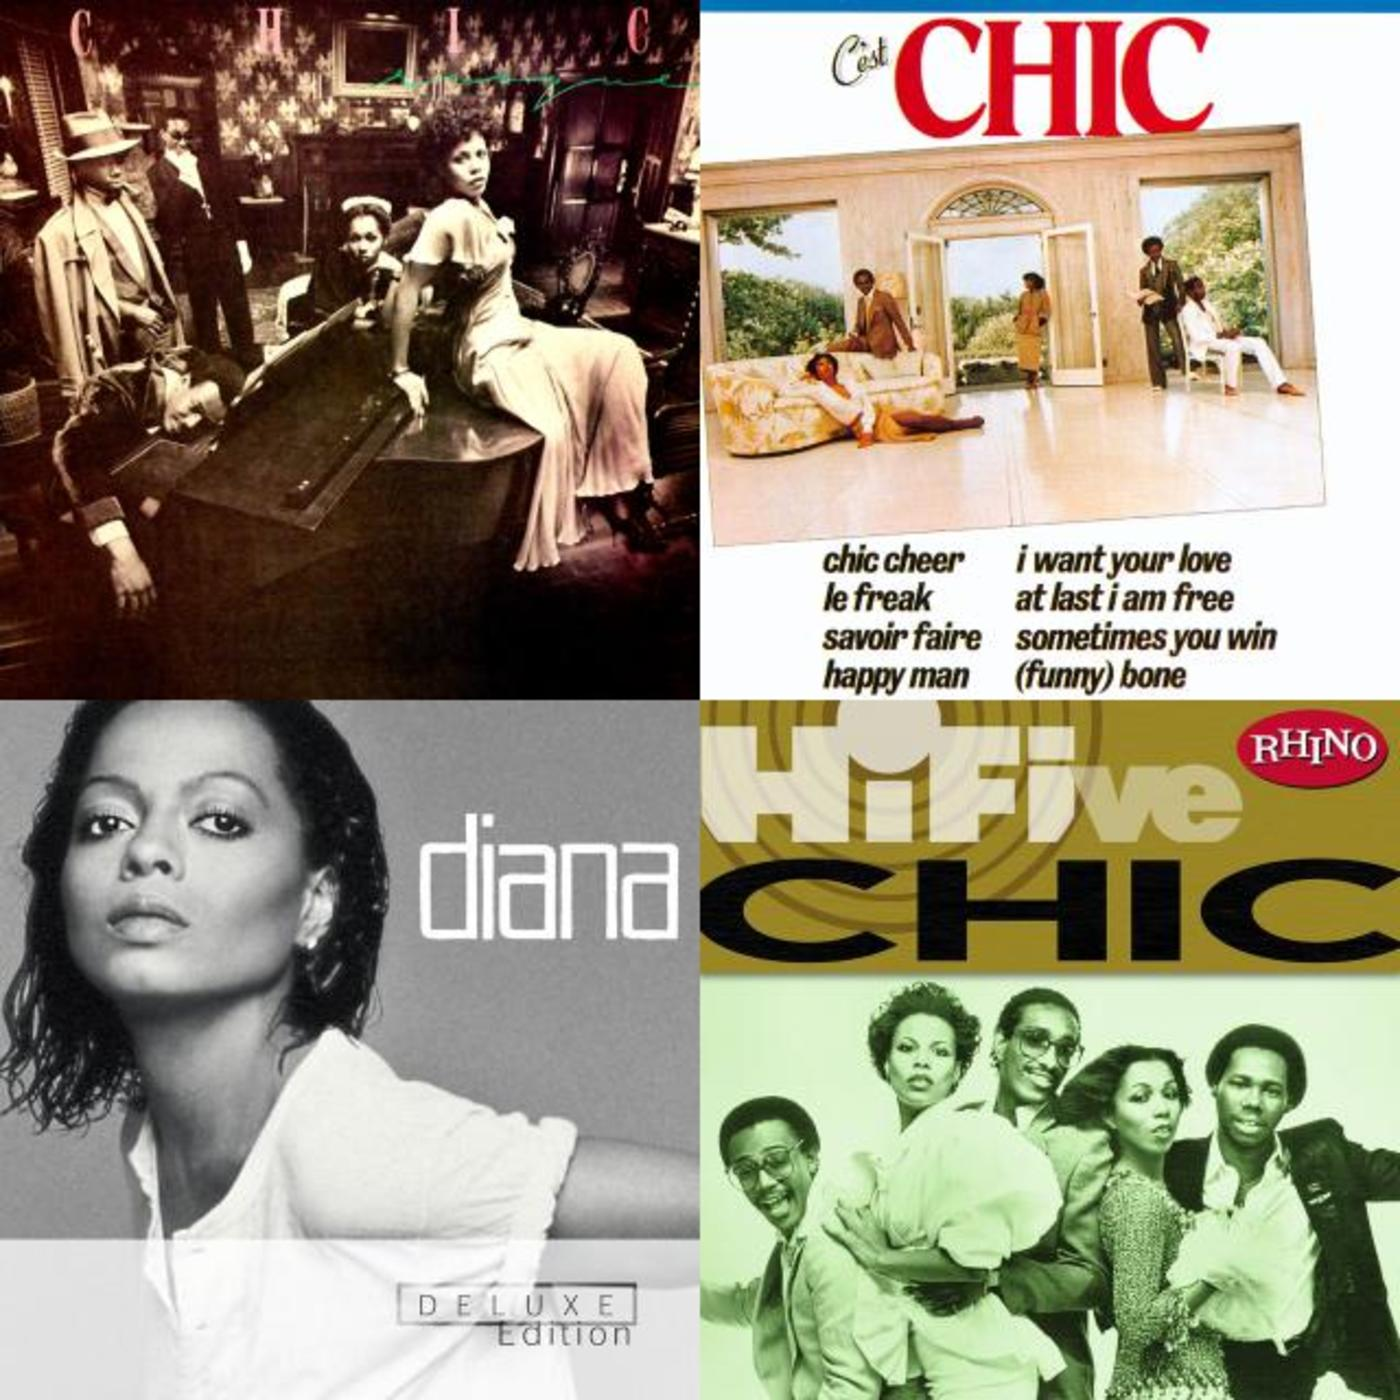 Chic – Nile Rodgers Presents:The Chic Organization - Up All Night